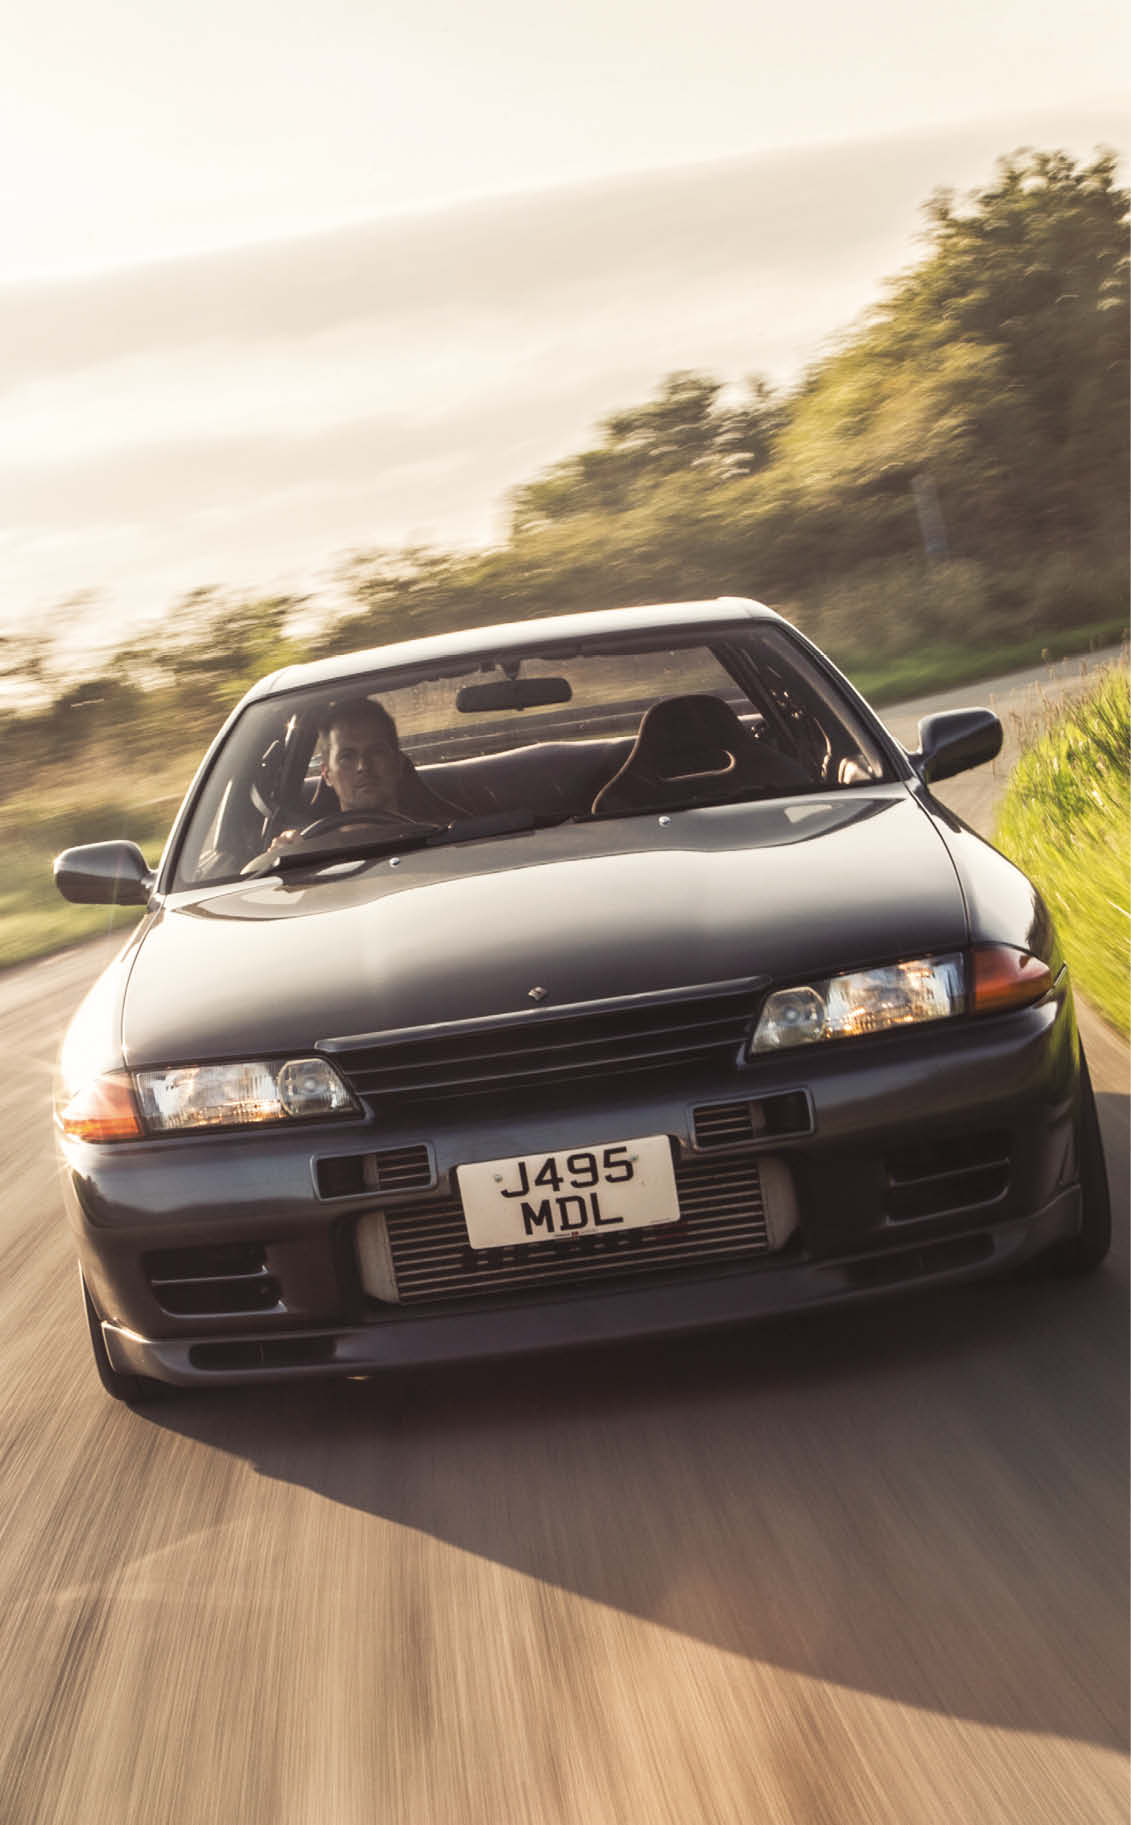 Not the first, but the R32 was the Skyline that immortalised the GT-R badging, and earned the title 'Godzilla'